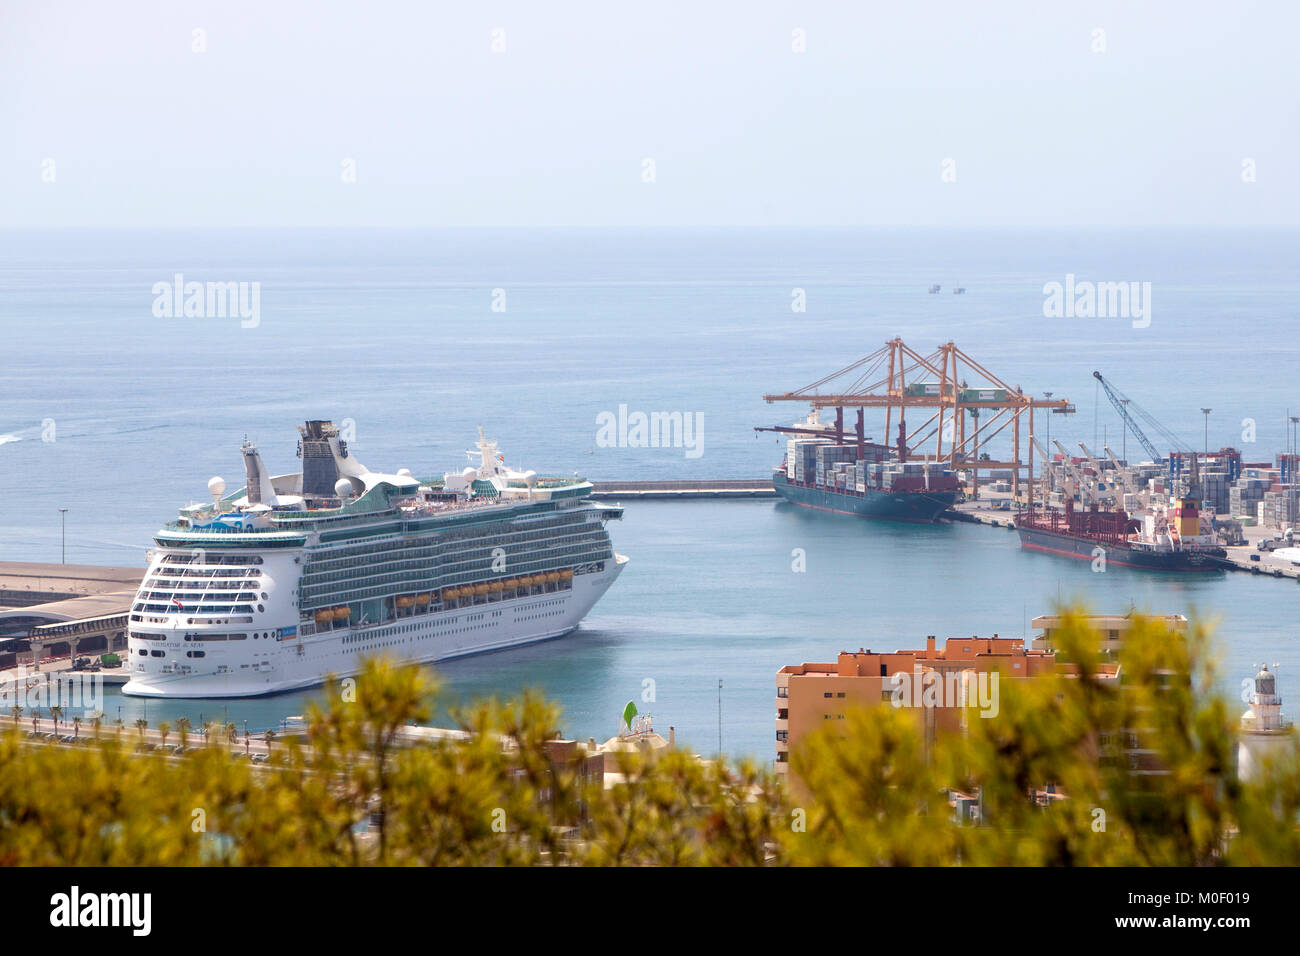 Royal Caribbean Navigator of the seas cruise ship berthed in Malaga Spain alongside two bulk carrier ships in summer - Stock Image